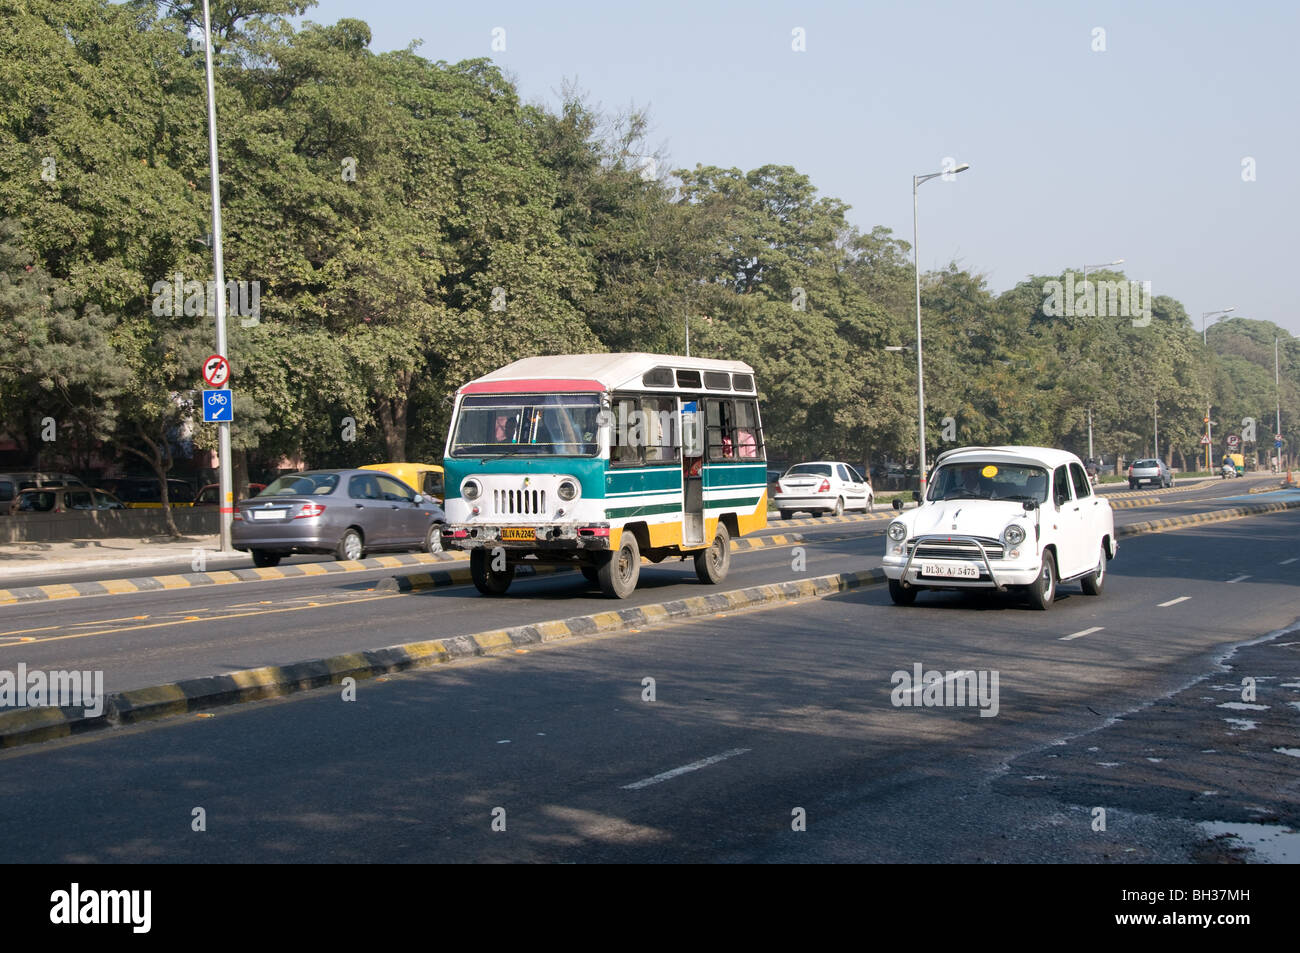 An India minibus drives down the Delhi BRT priority bus lane while there is an Ambassador car on the normal road - Stock Image